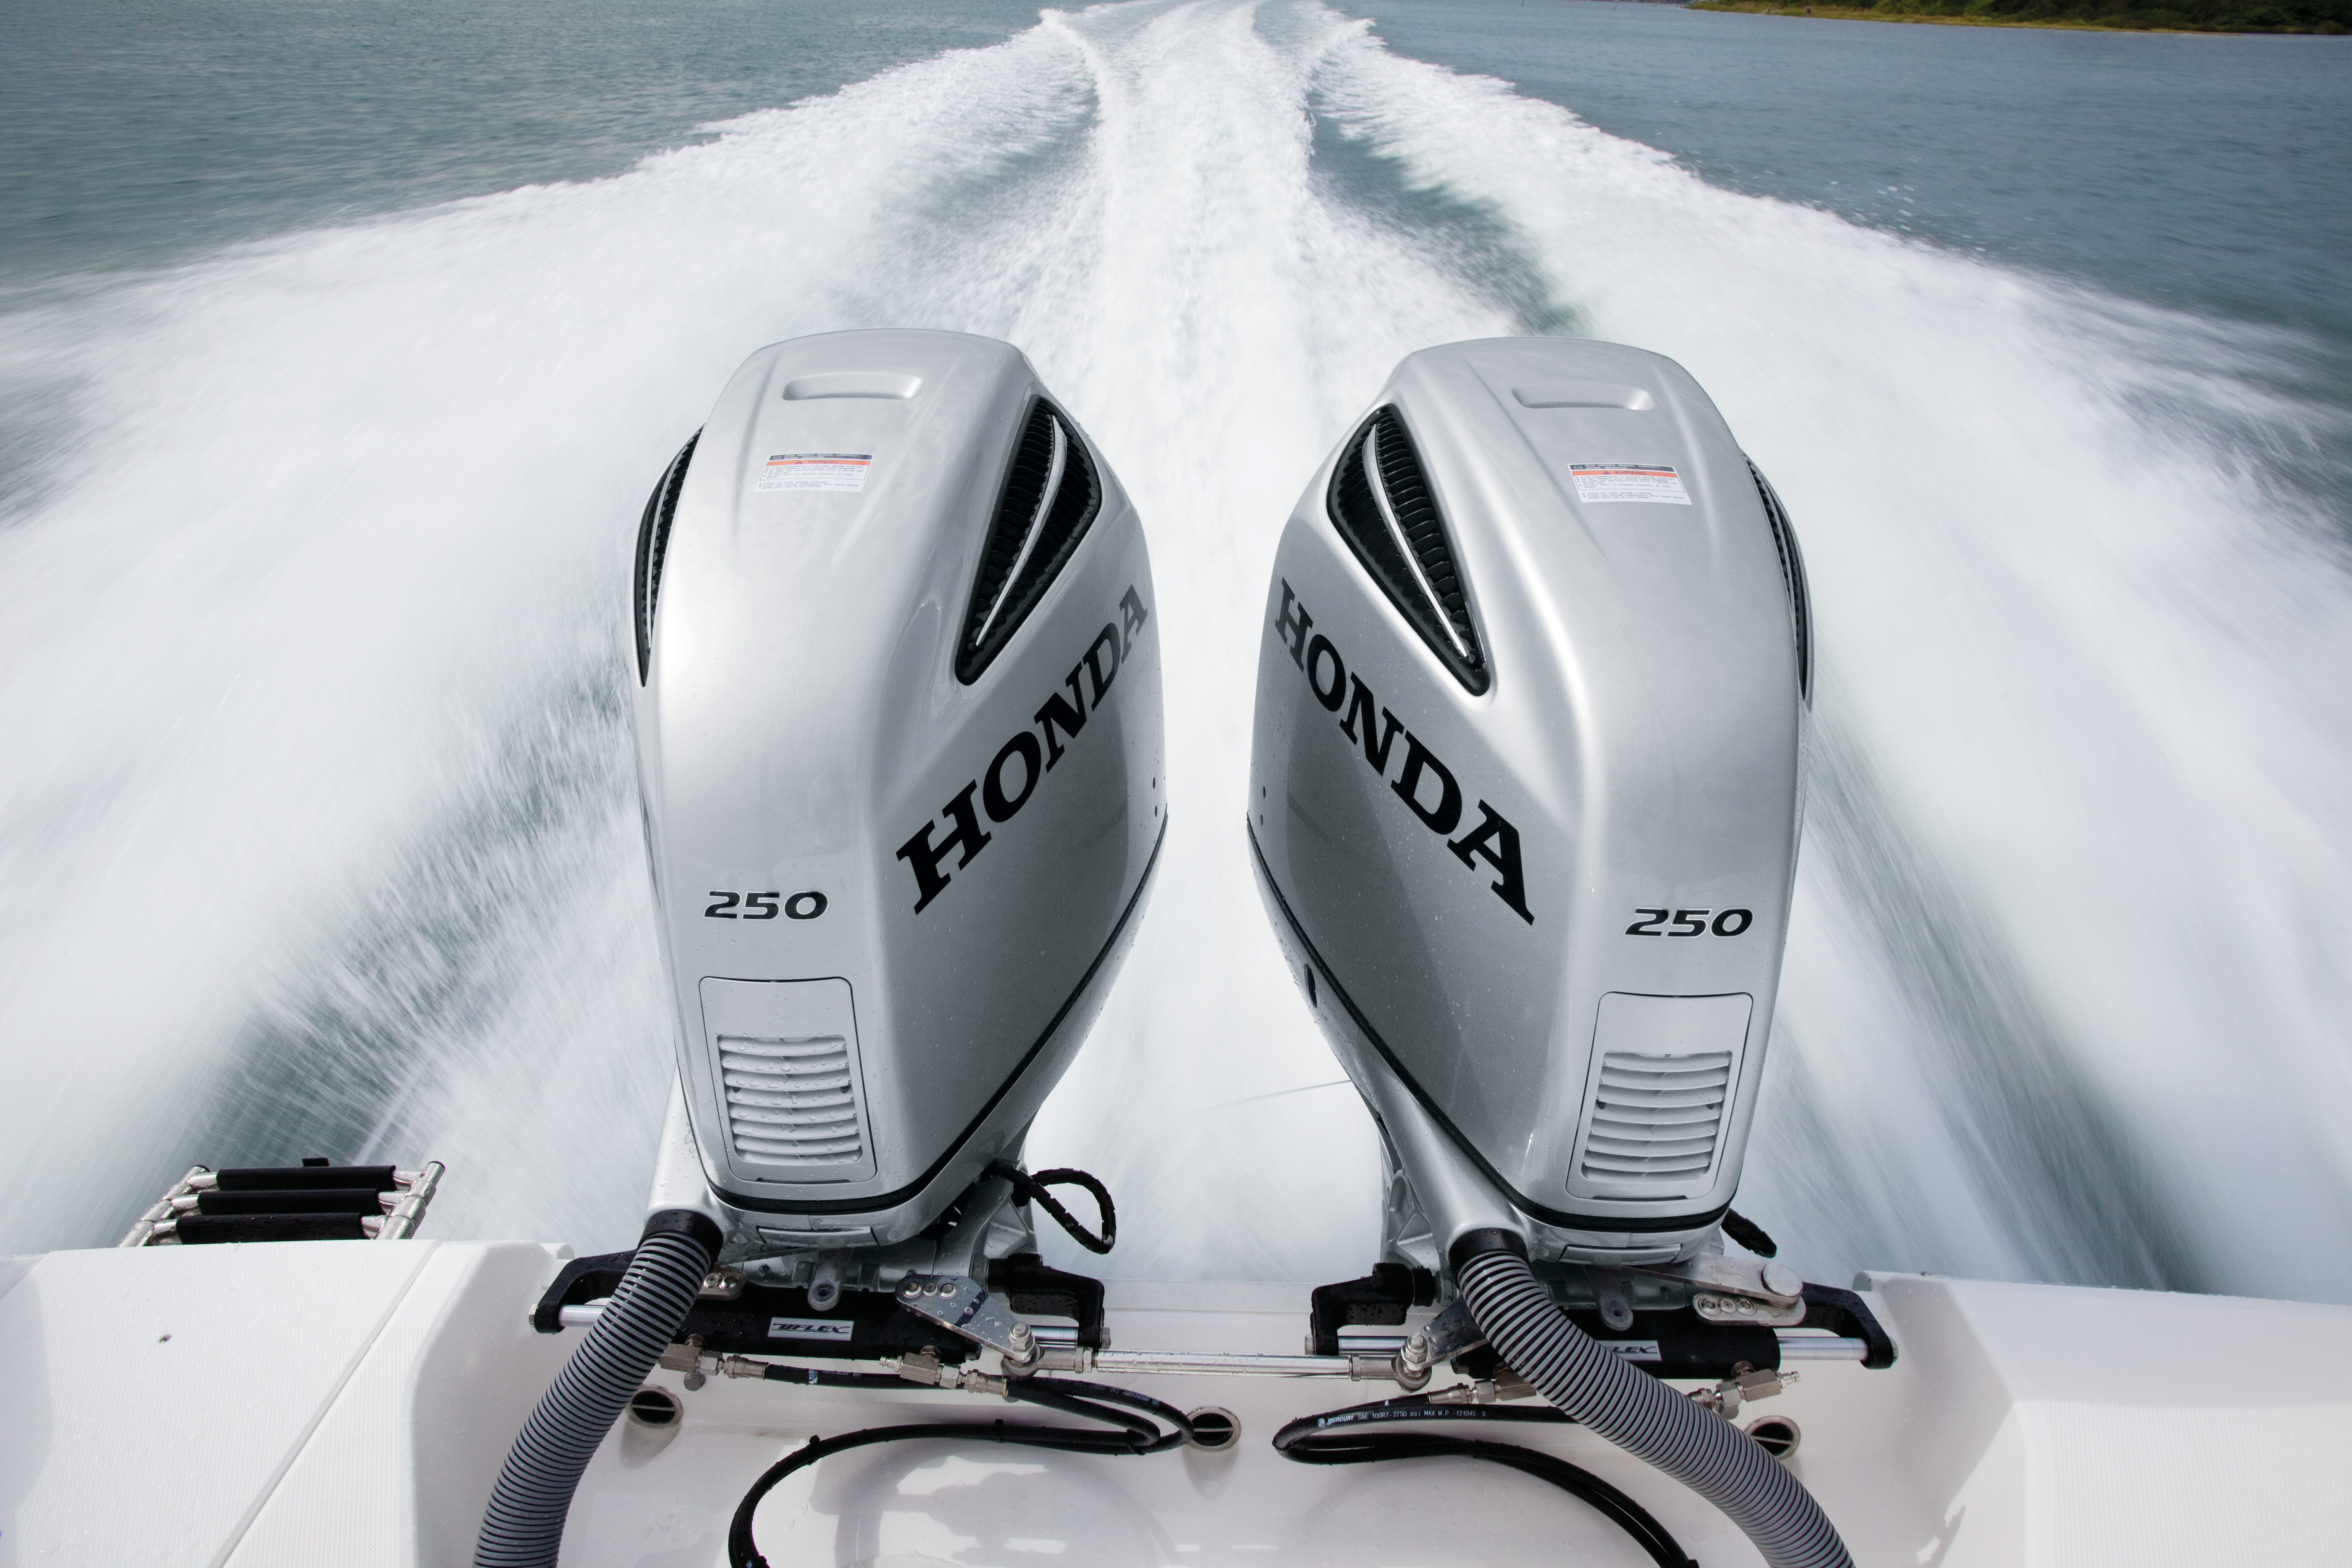 outboards profile redesigned honda news outboard boating debuts marine industry left